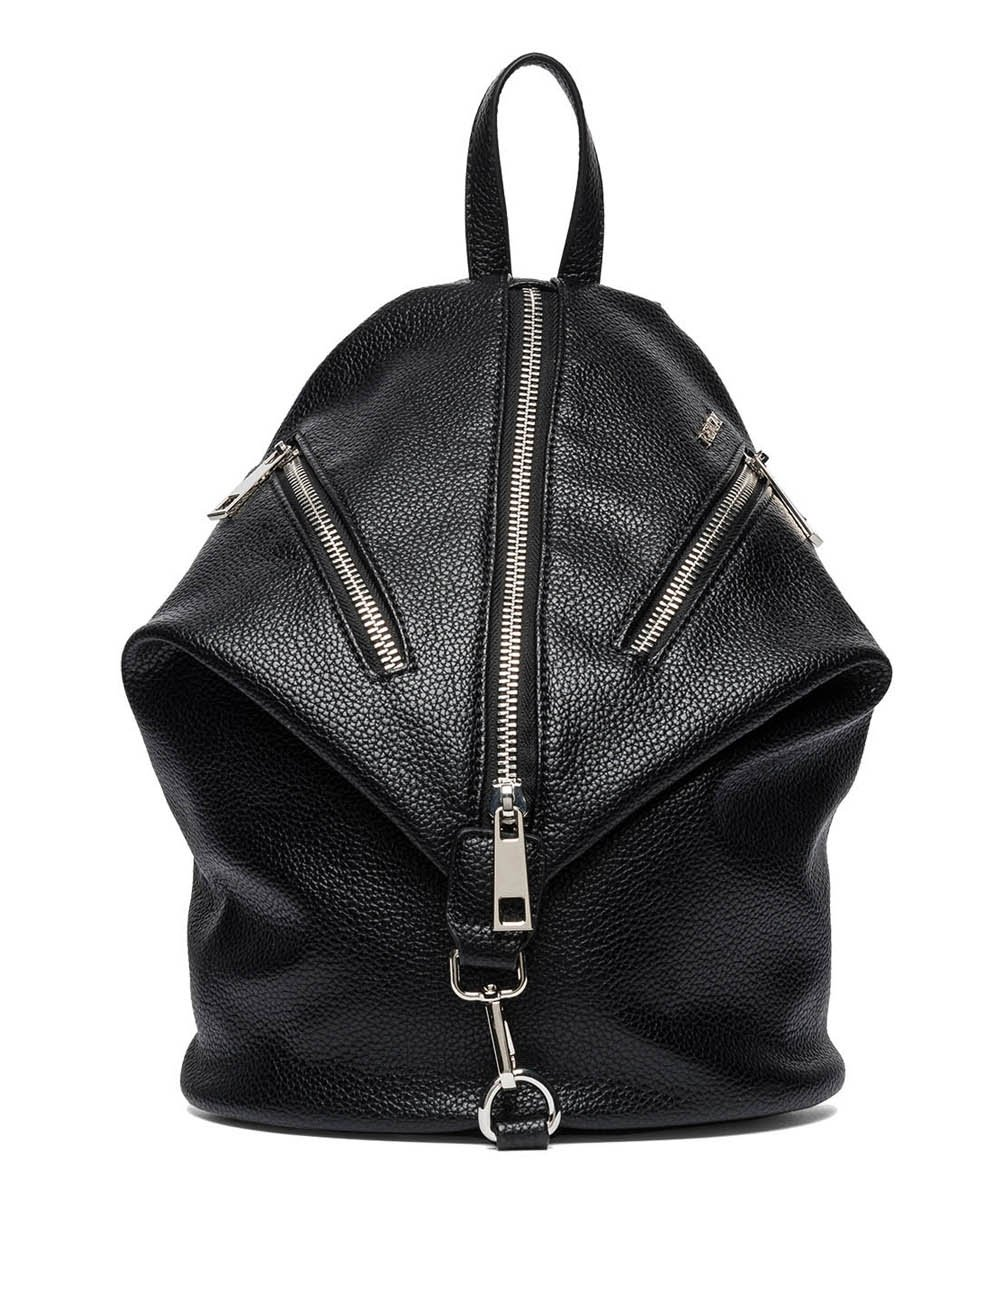 Replay Women's Women's Faux Leather Black Backpack Black